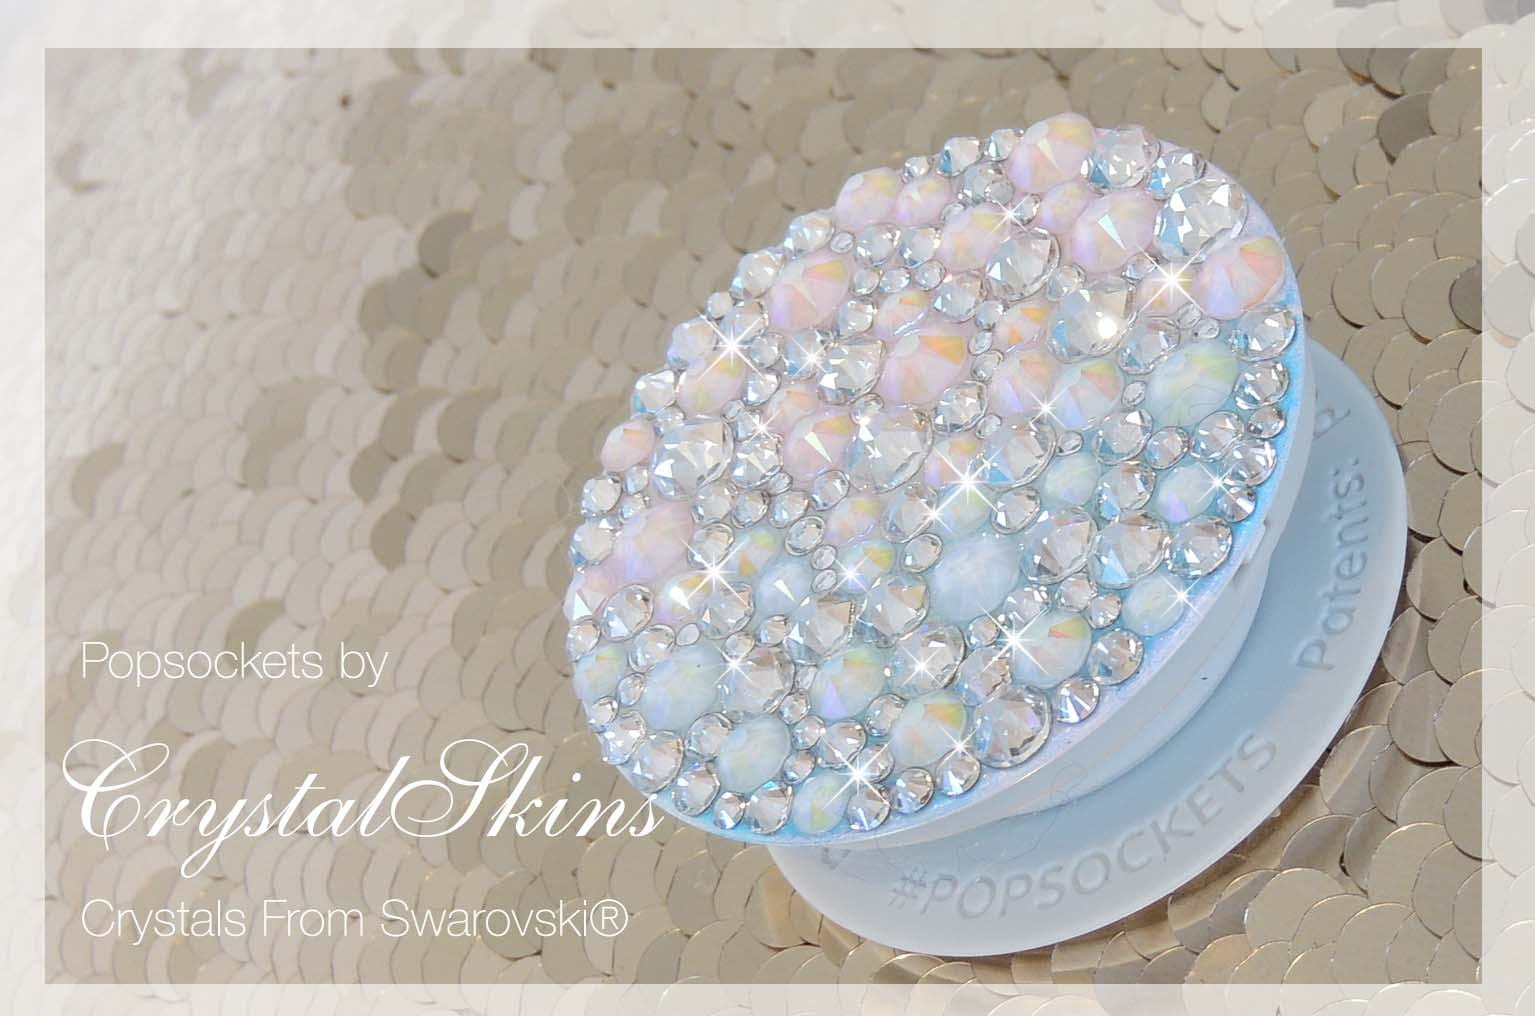 Unicorn Bling Crystal Popsoket. Crystals by Swarovski®